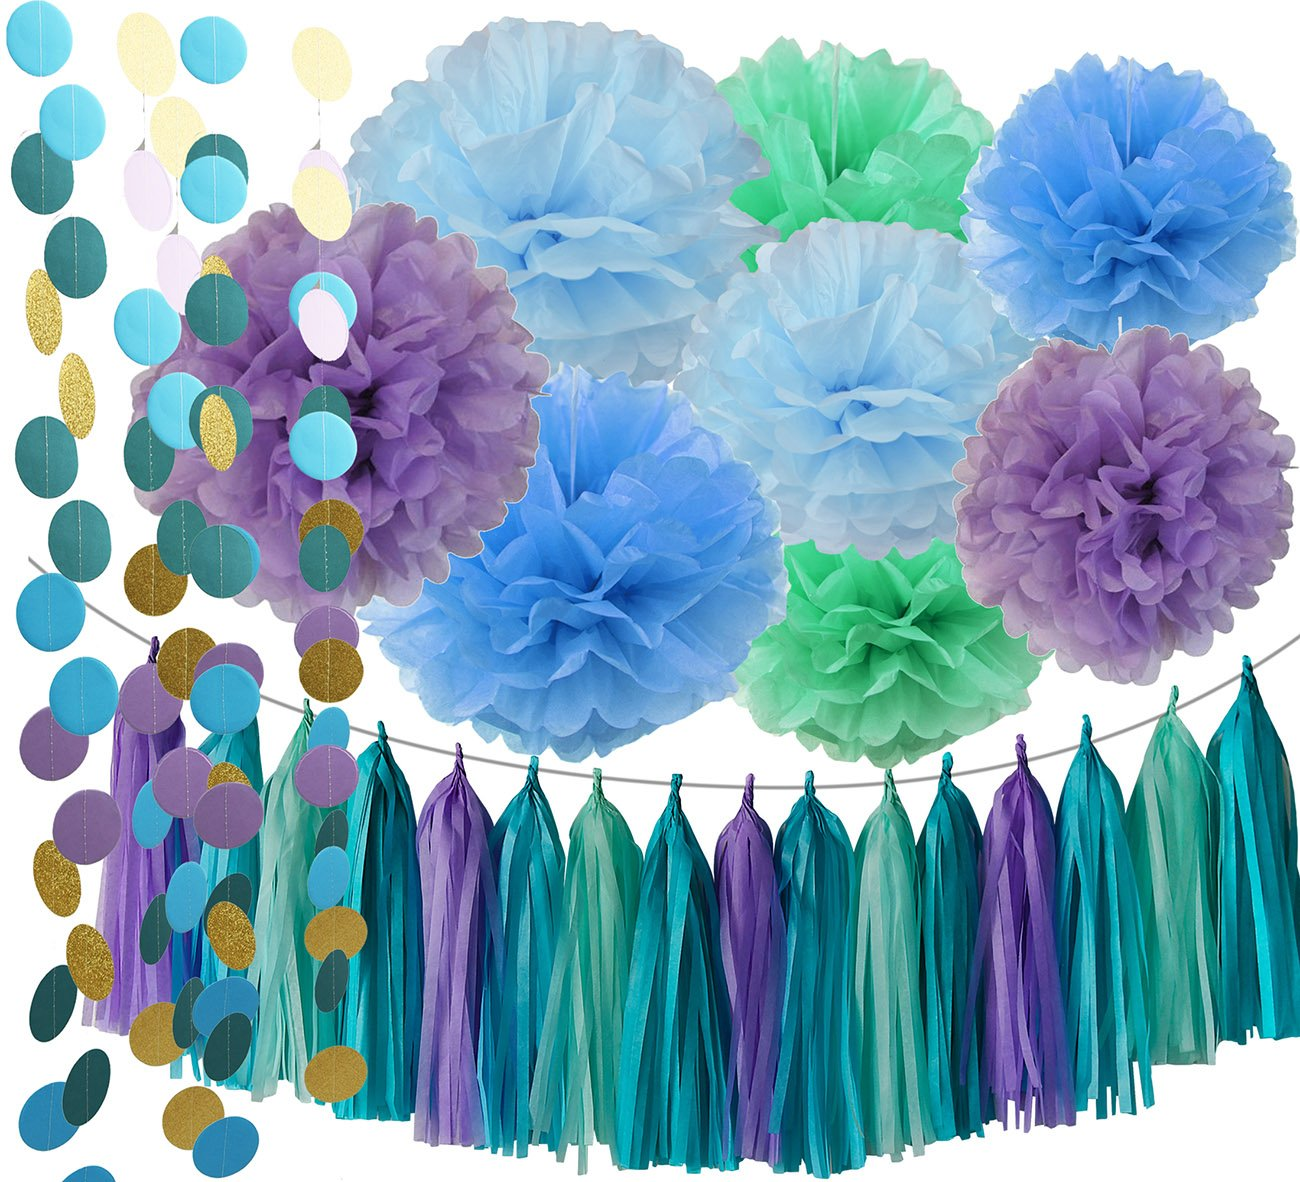 under the sea party suppliesmermaid decorations teal purple blue mint tissue pom poms first birthday decorations baby shower decorations purple mermaid